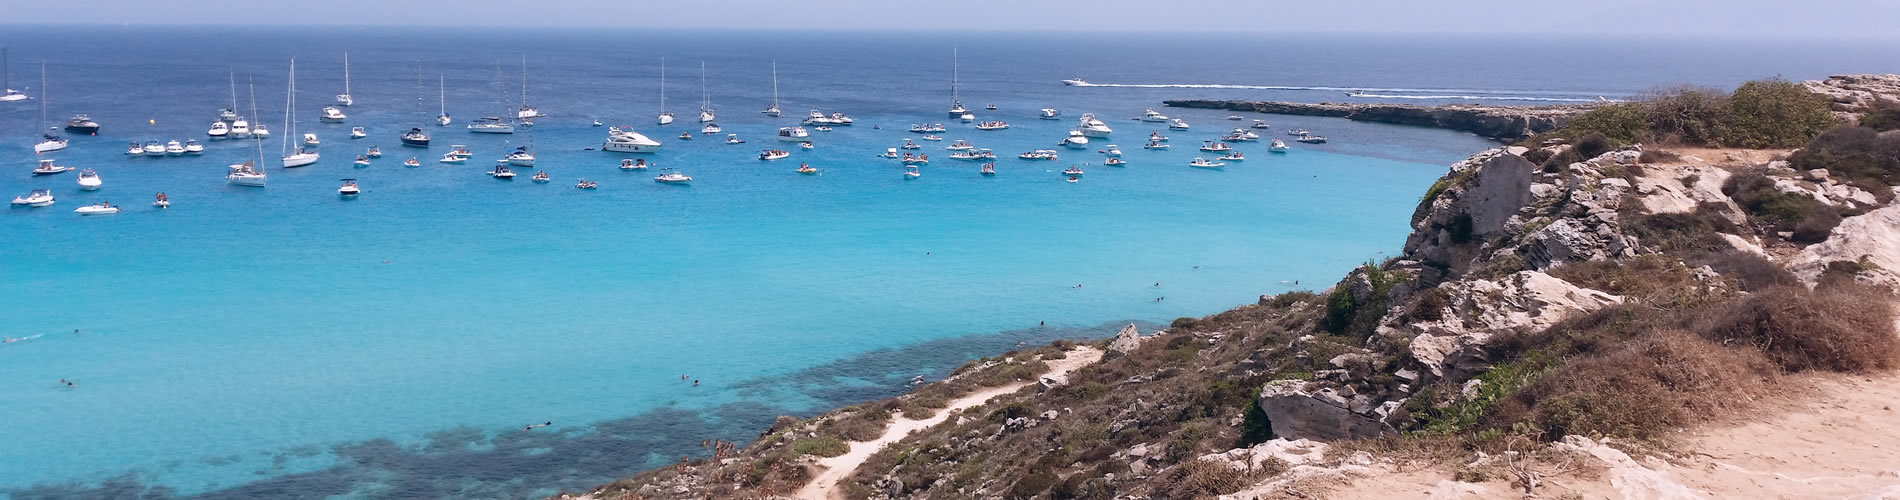 Contact the Boa Vista residence in Favignana